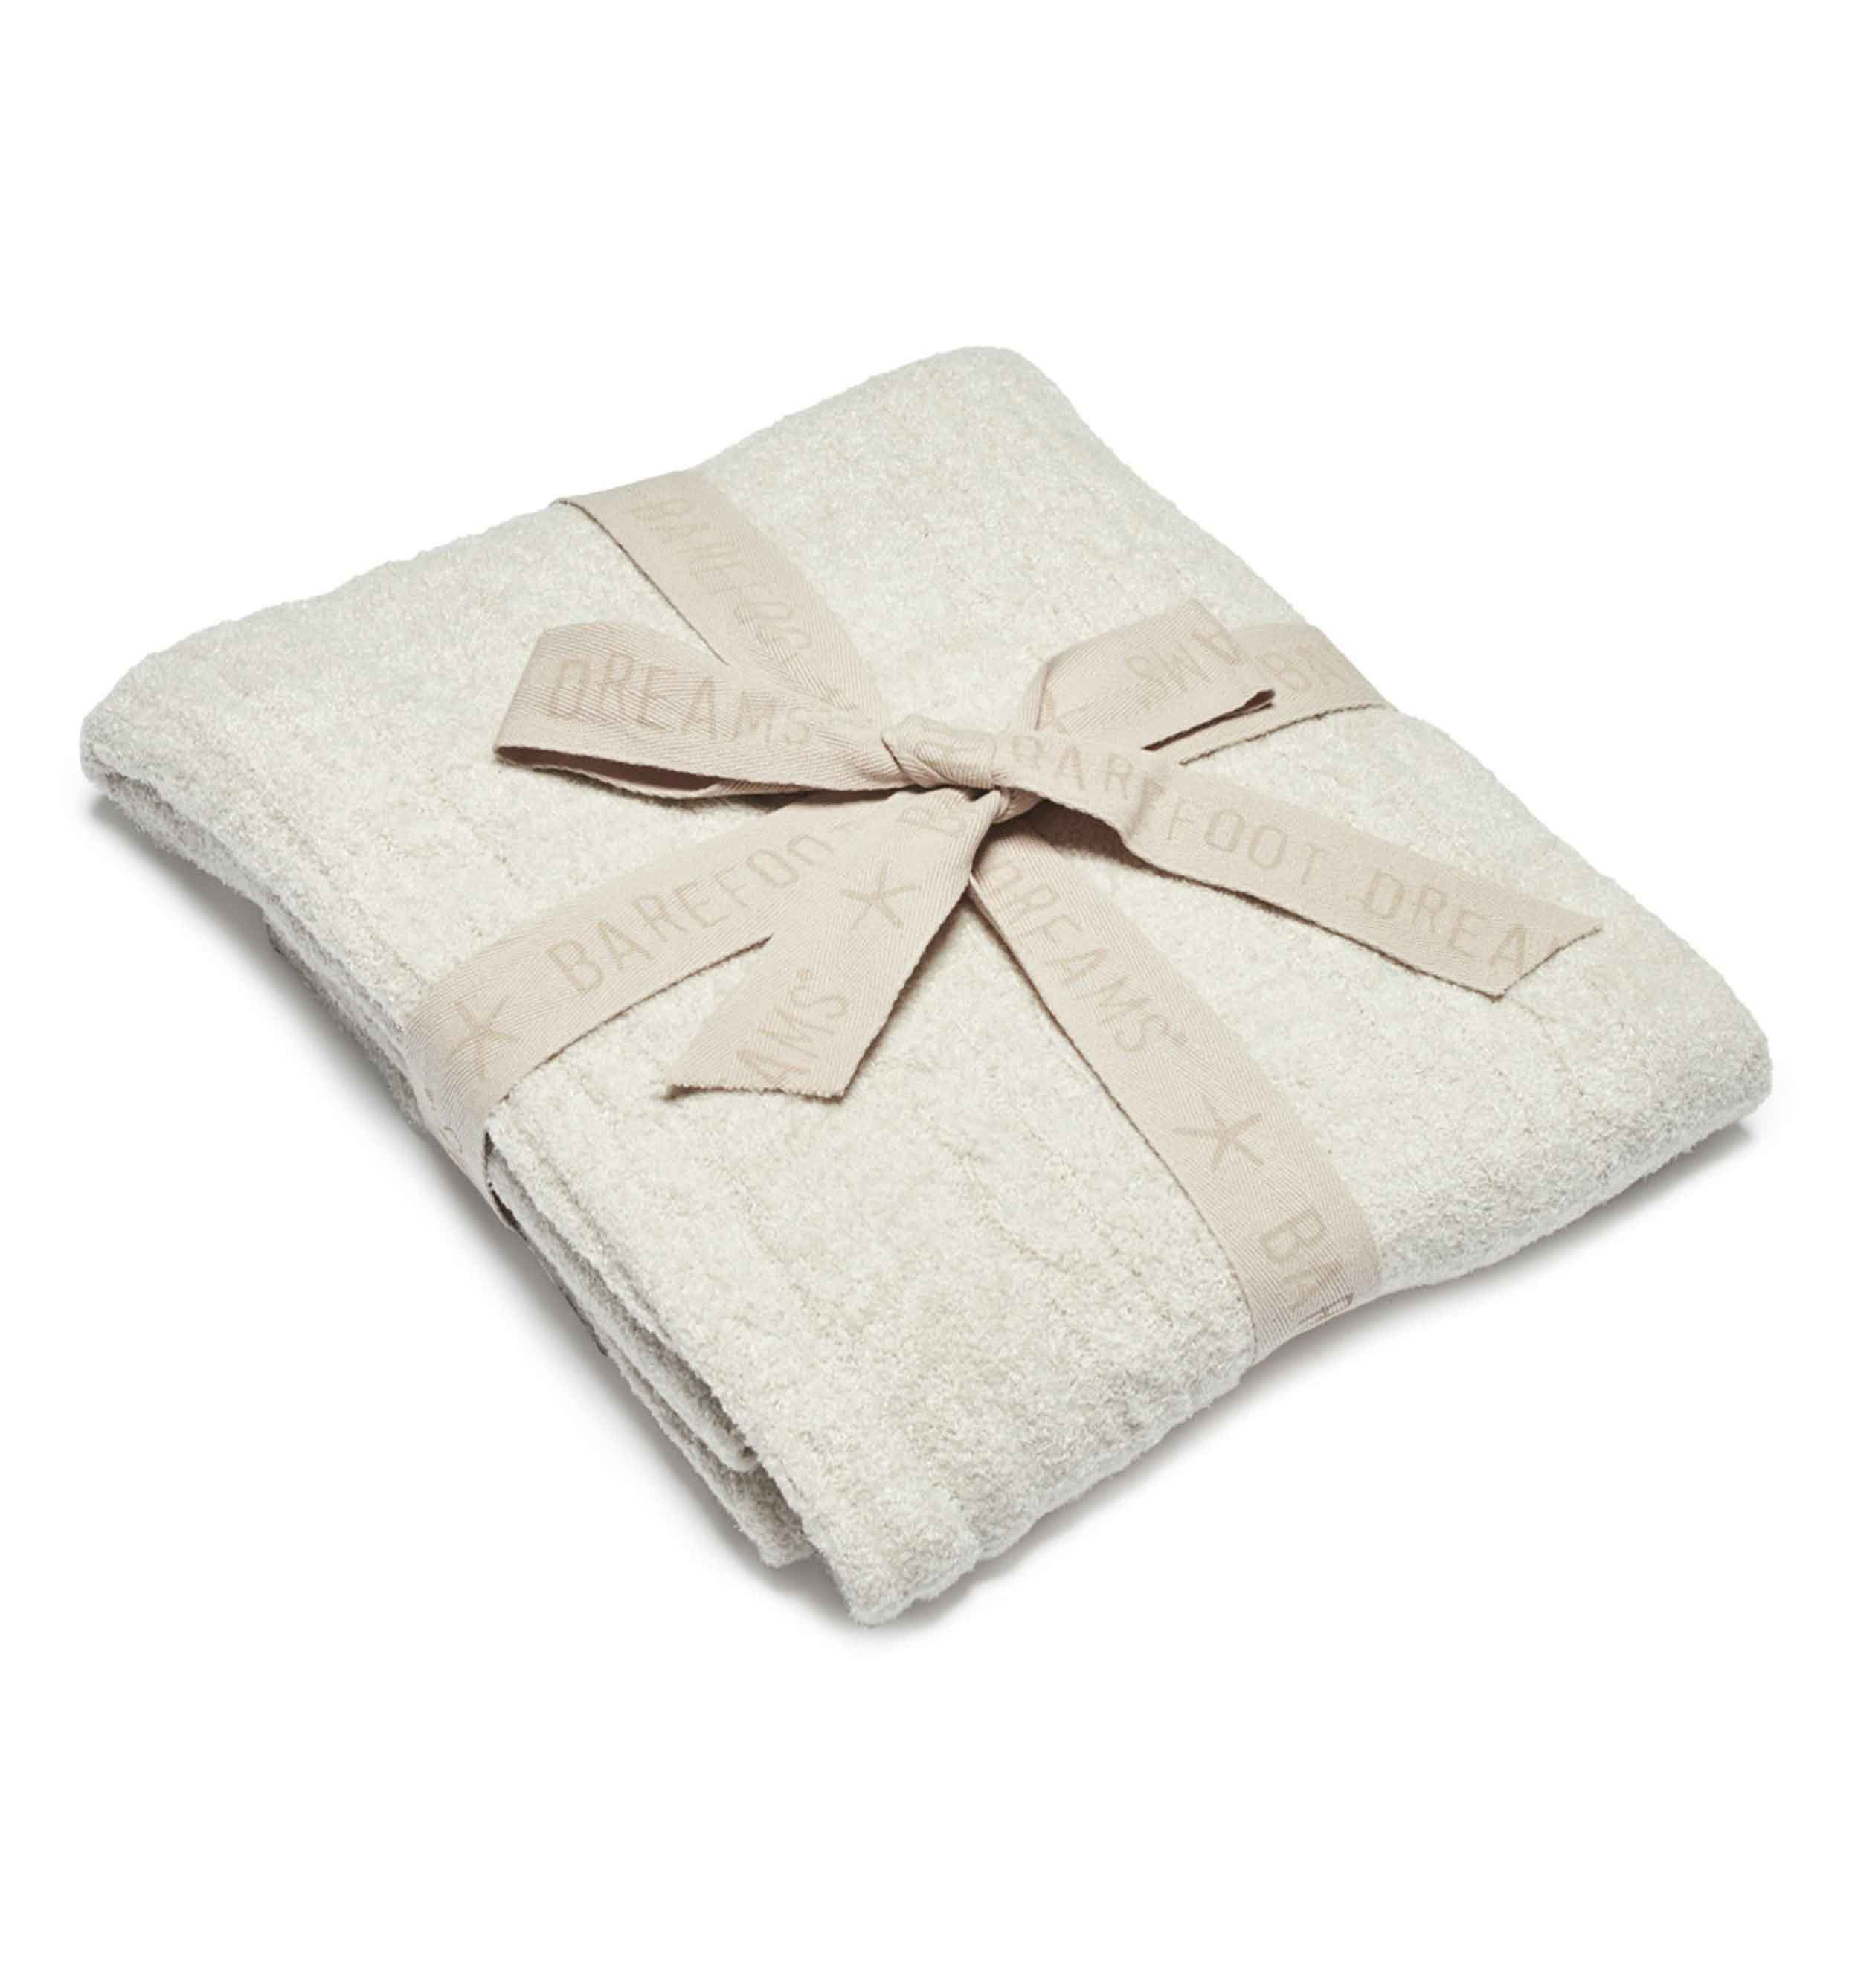 nordstrom-sale-2019-barefoot-dreams-throw